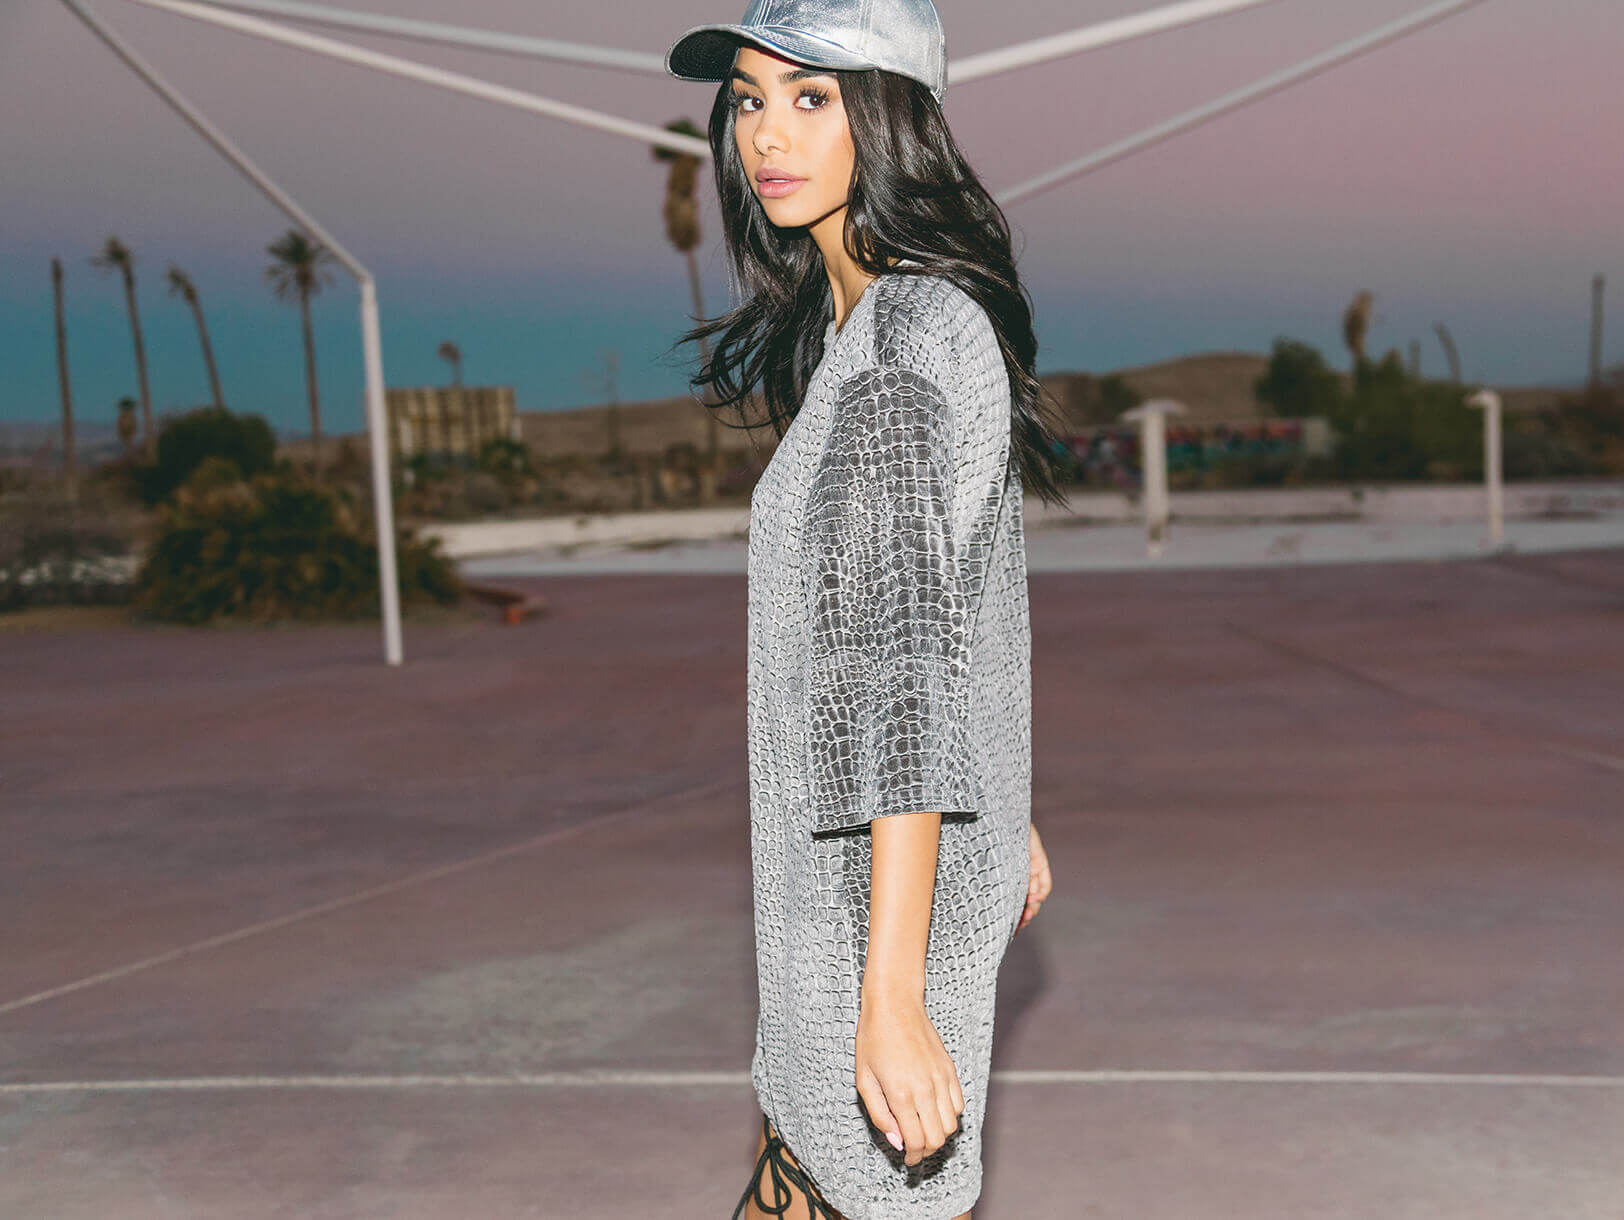 Ania silver metallic pu baseball cap , Isabelle grey animal embossed velvet jumper dress , Adreena silver holographic heeled boots